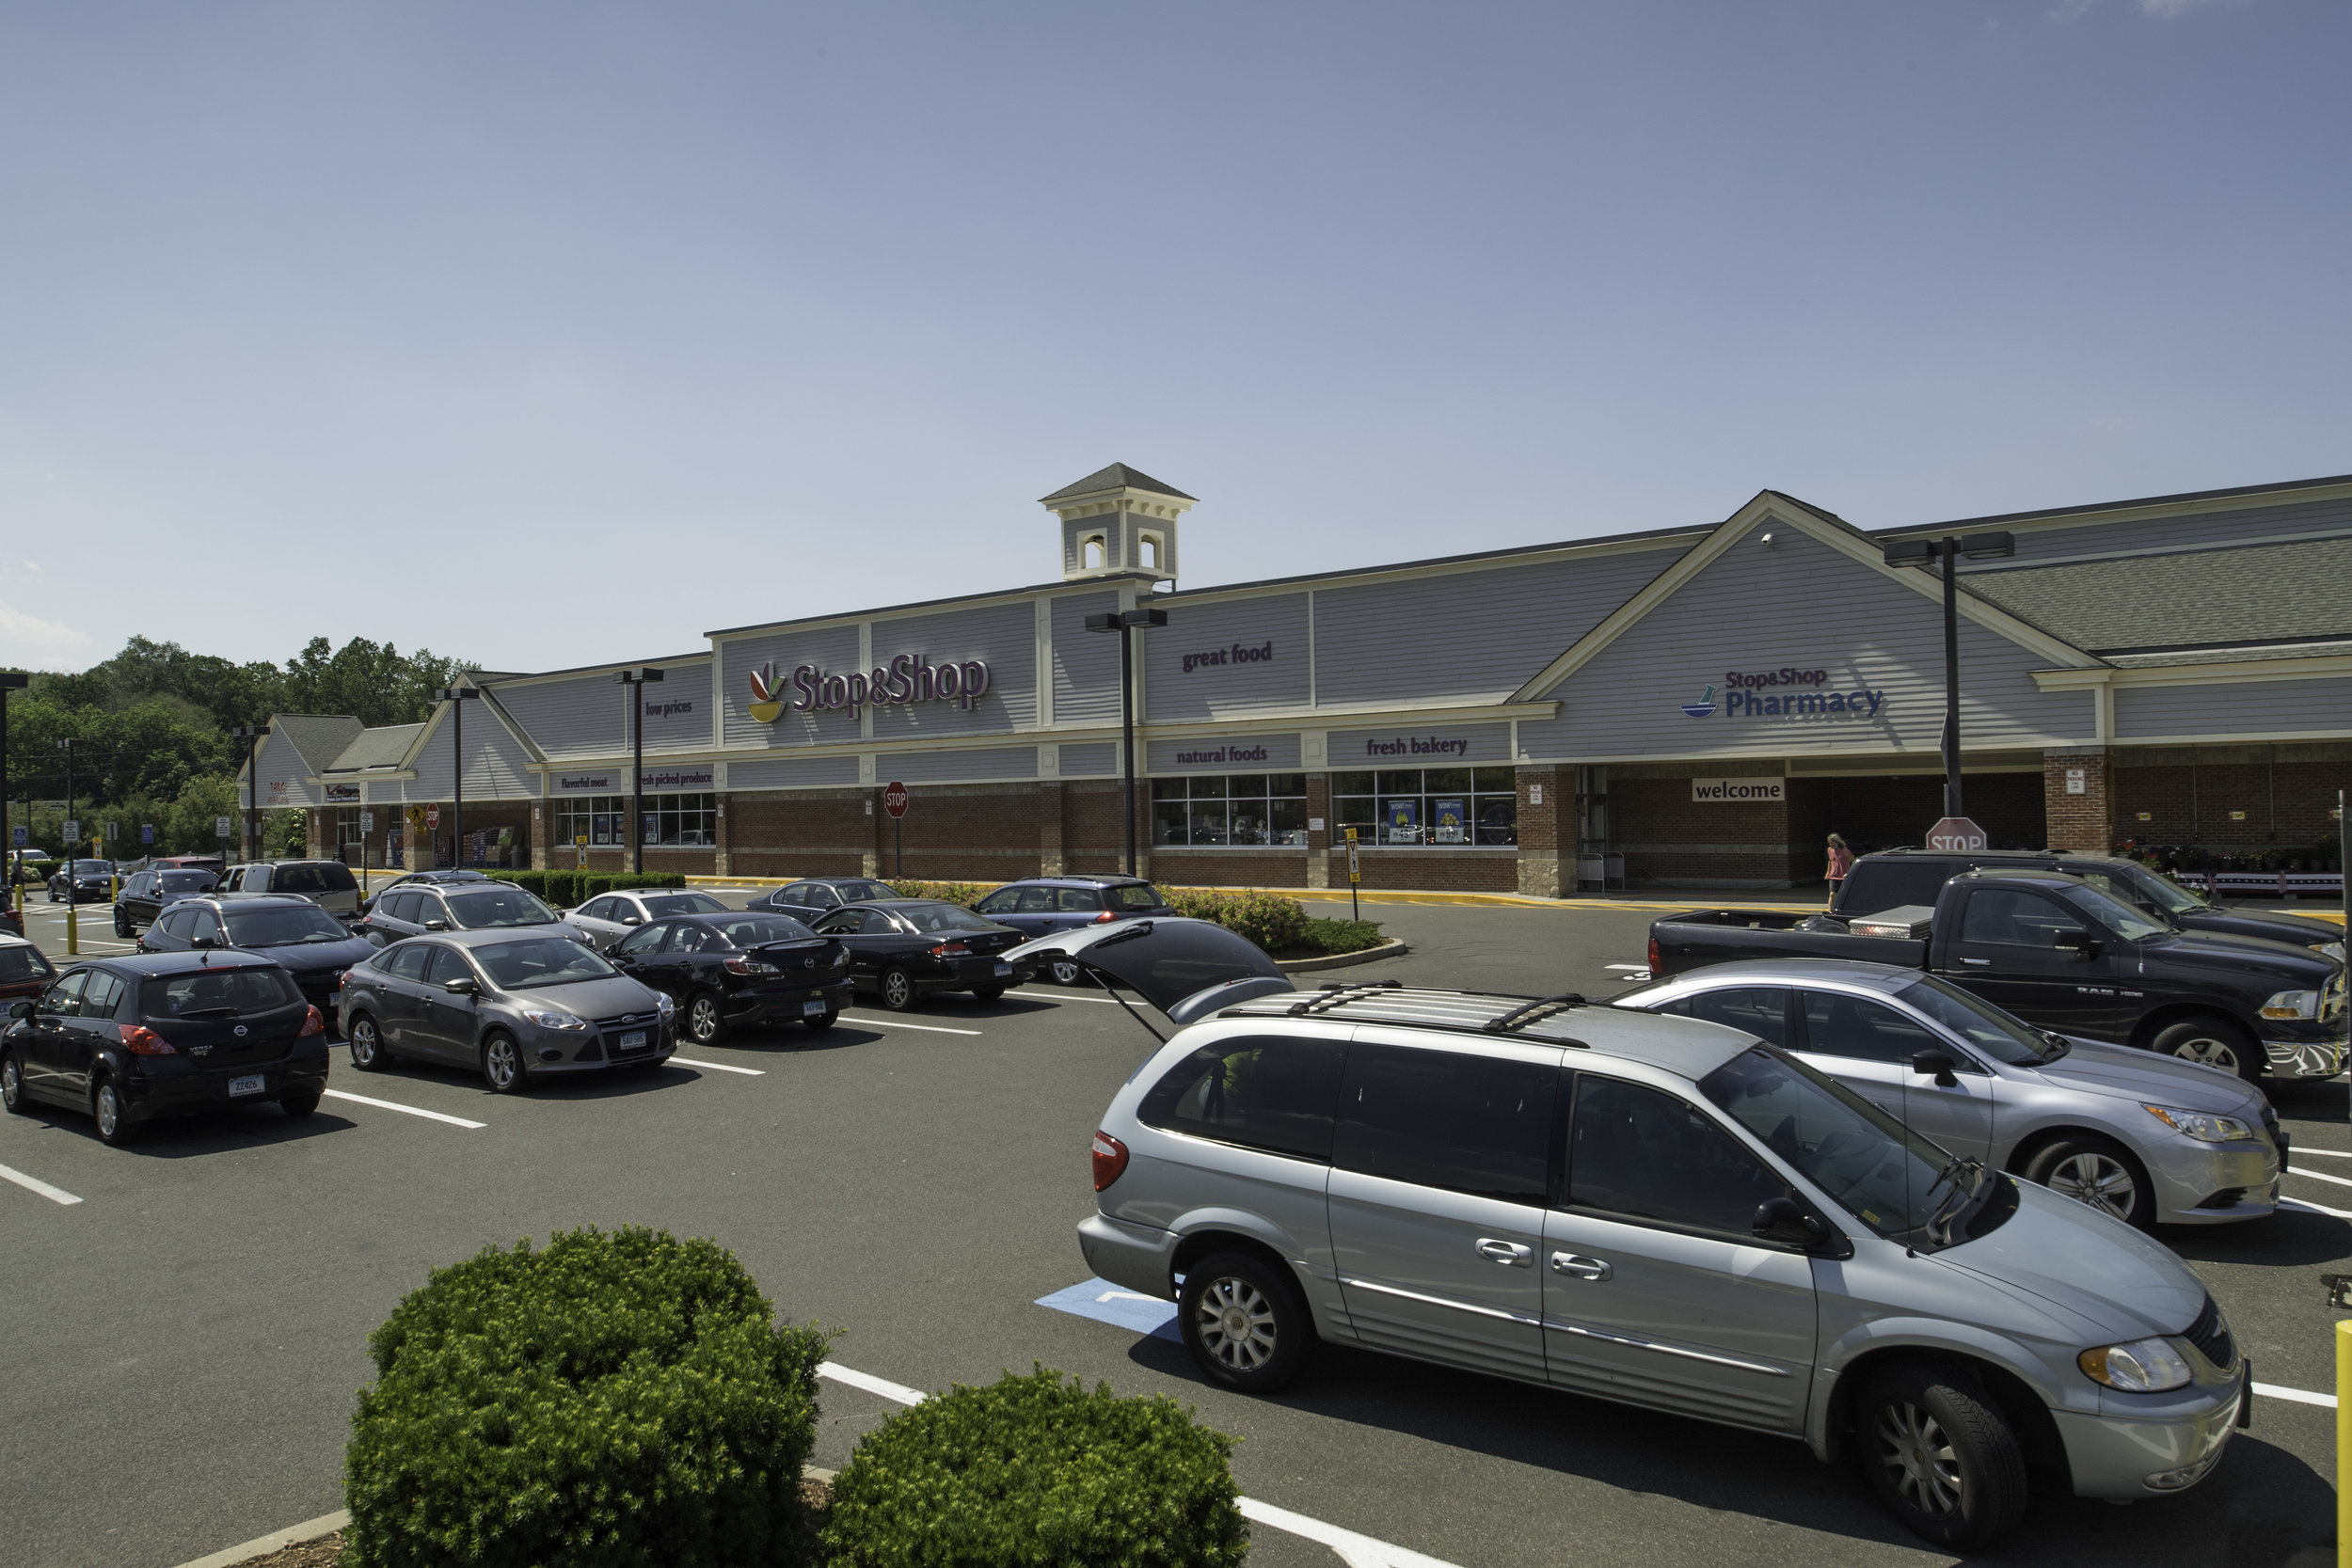 CPI East Hampton Plaza_014.jpg